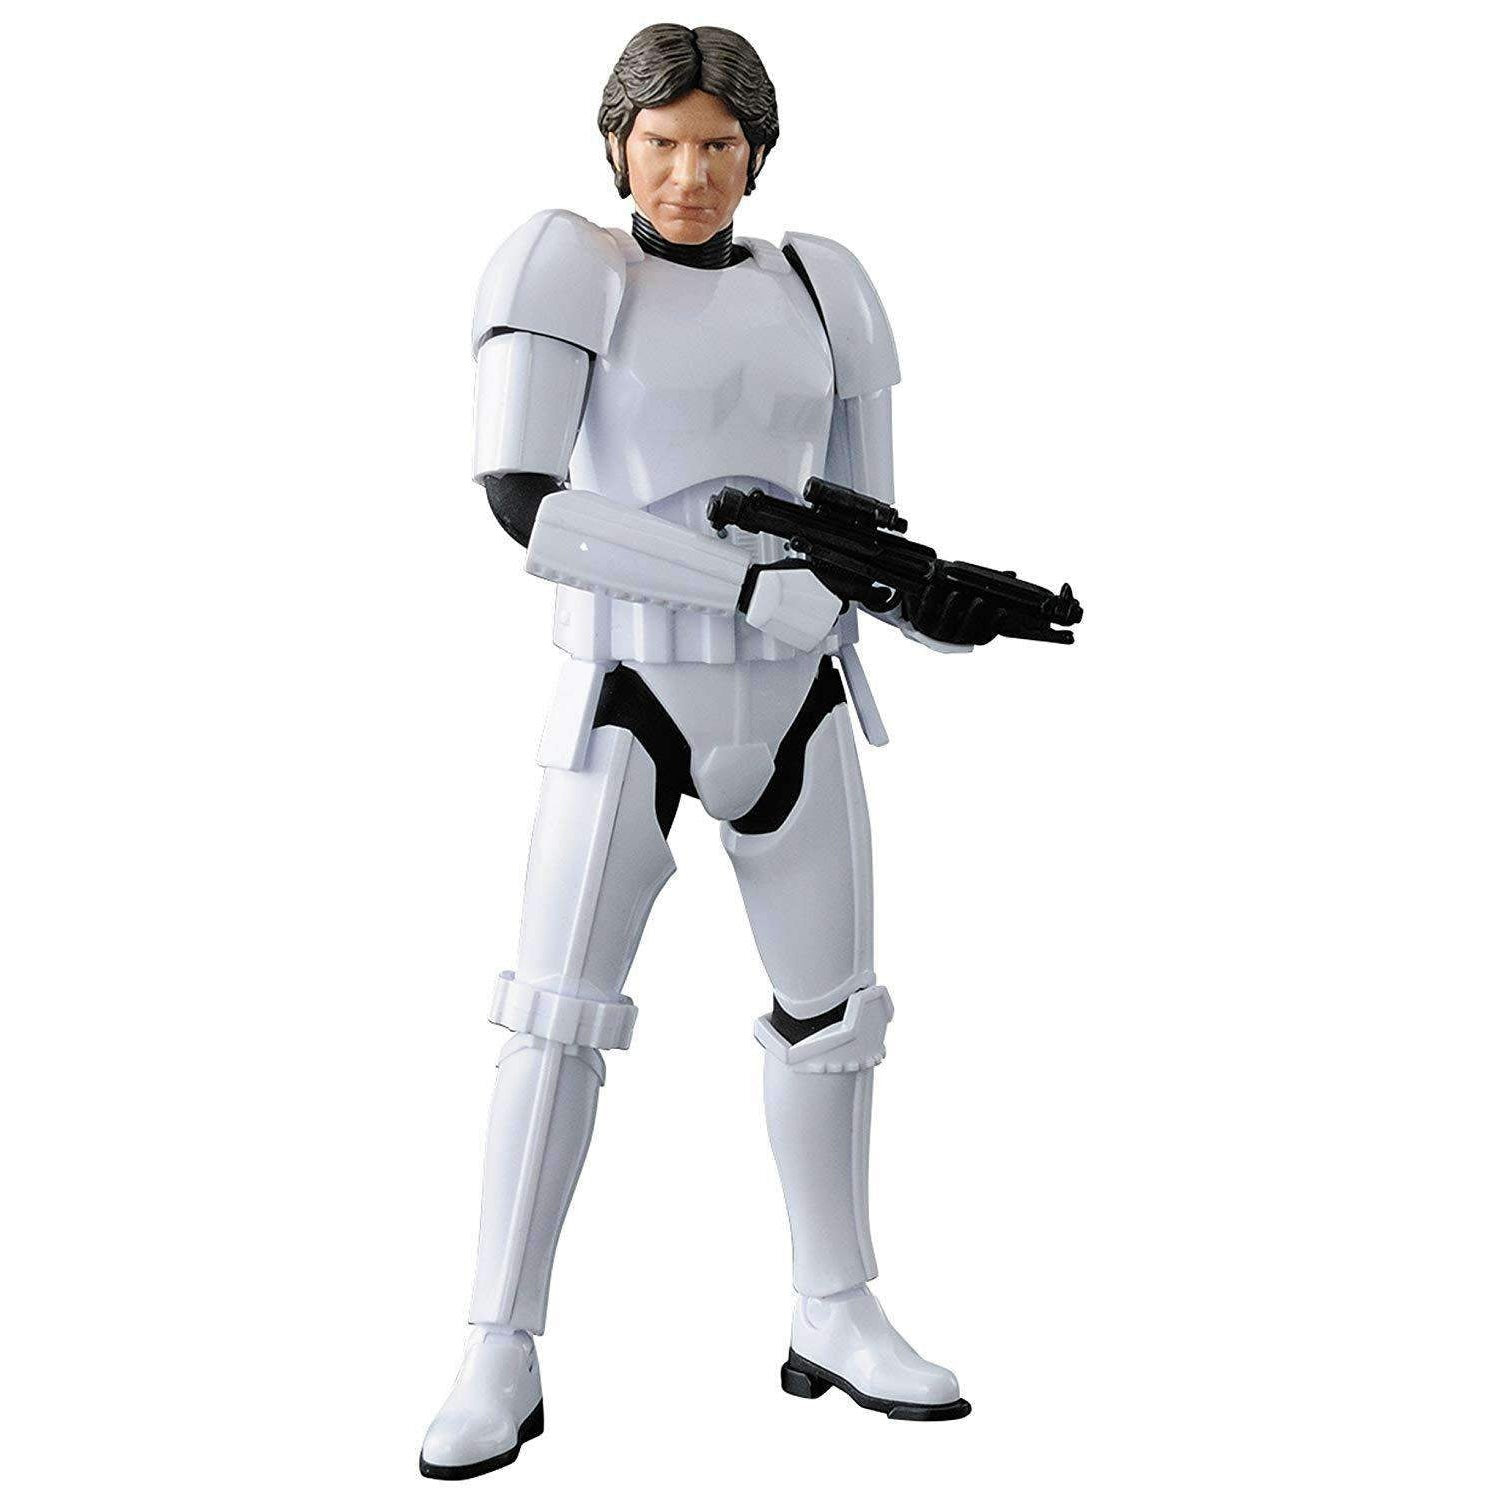 Image of Star Wars Han Solo (Stormtrooper) 1/12 Scale Model Kit